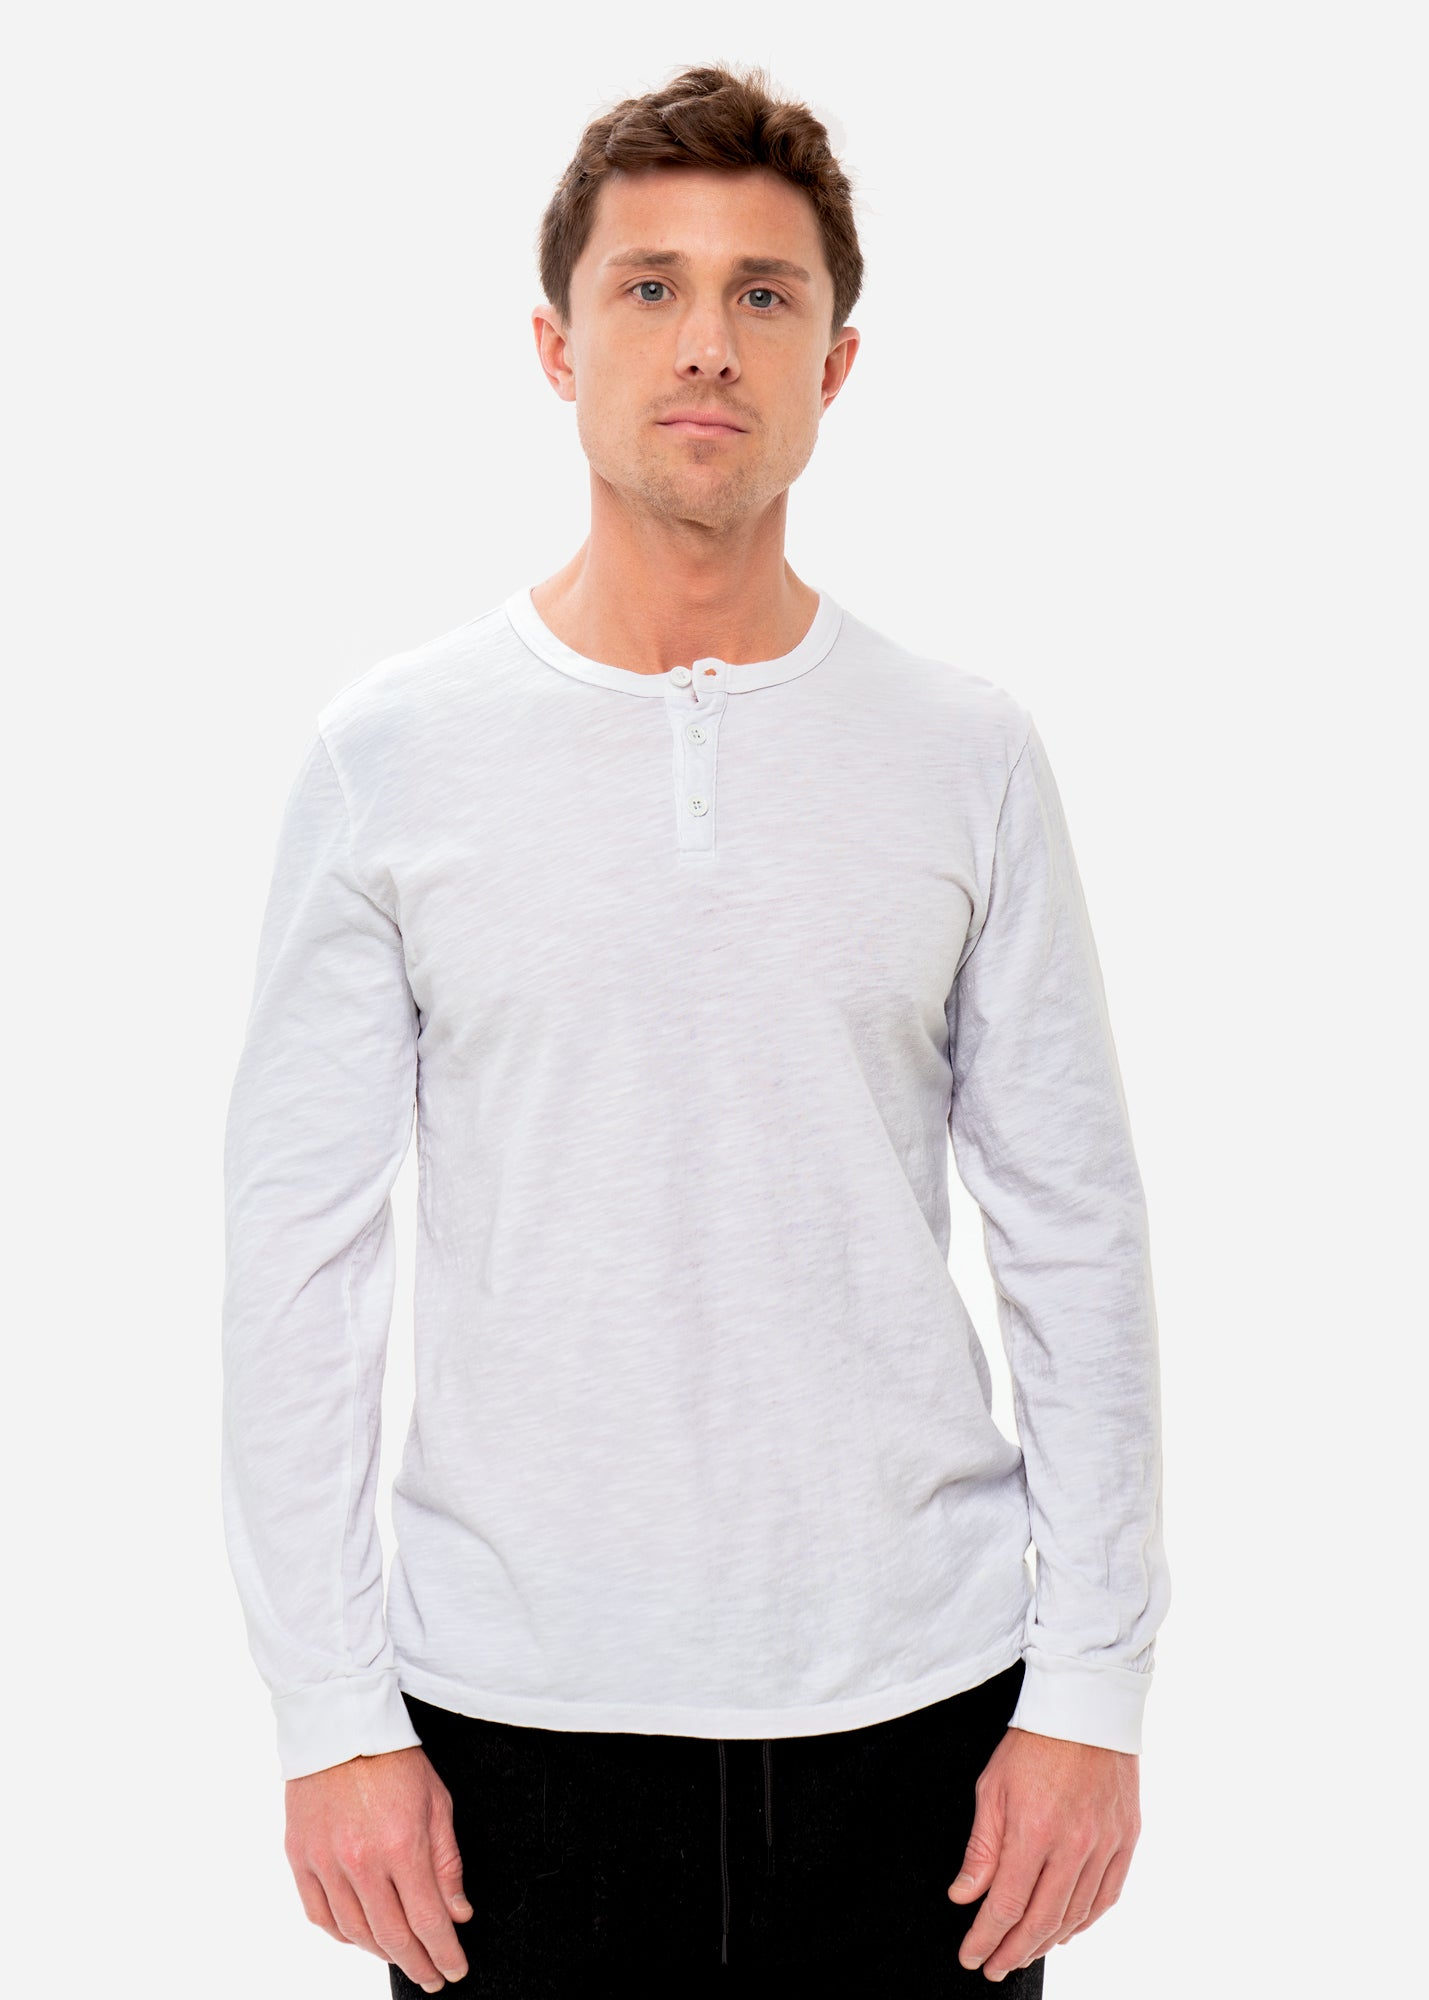 The Slub Henley